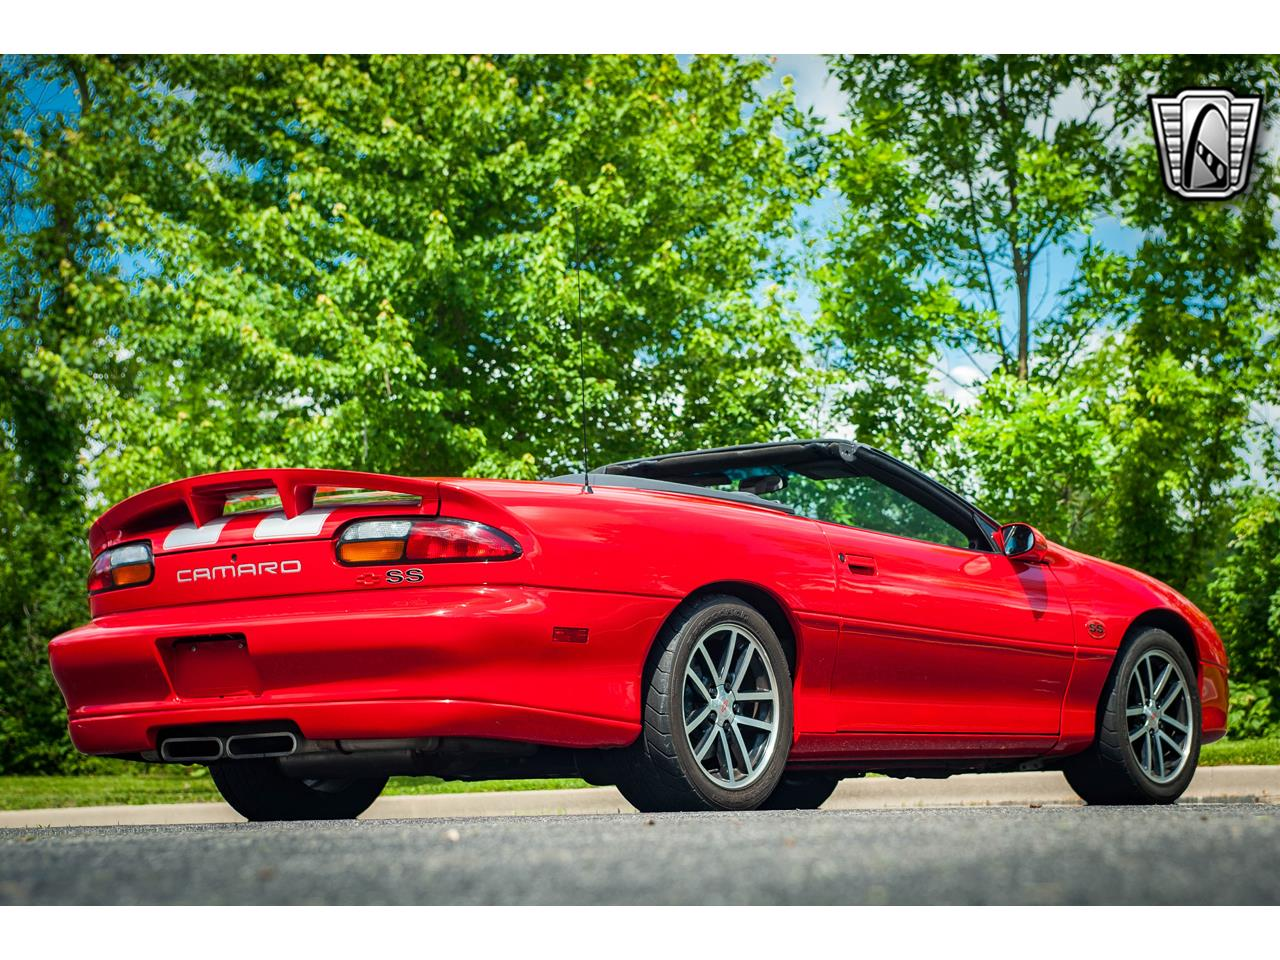 Large Picture of 2002 Camaro located in Illinois - $33,500.00 - QB9Z